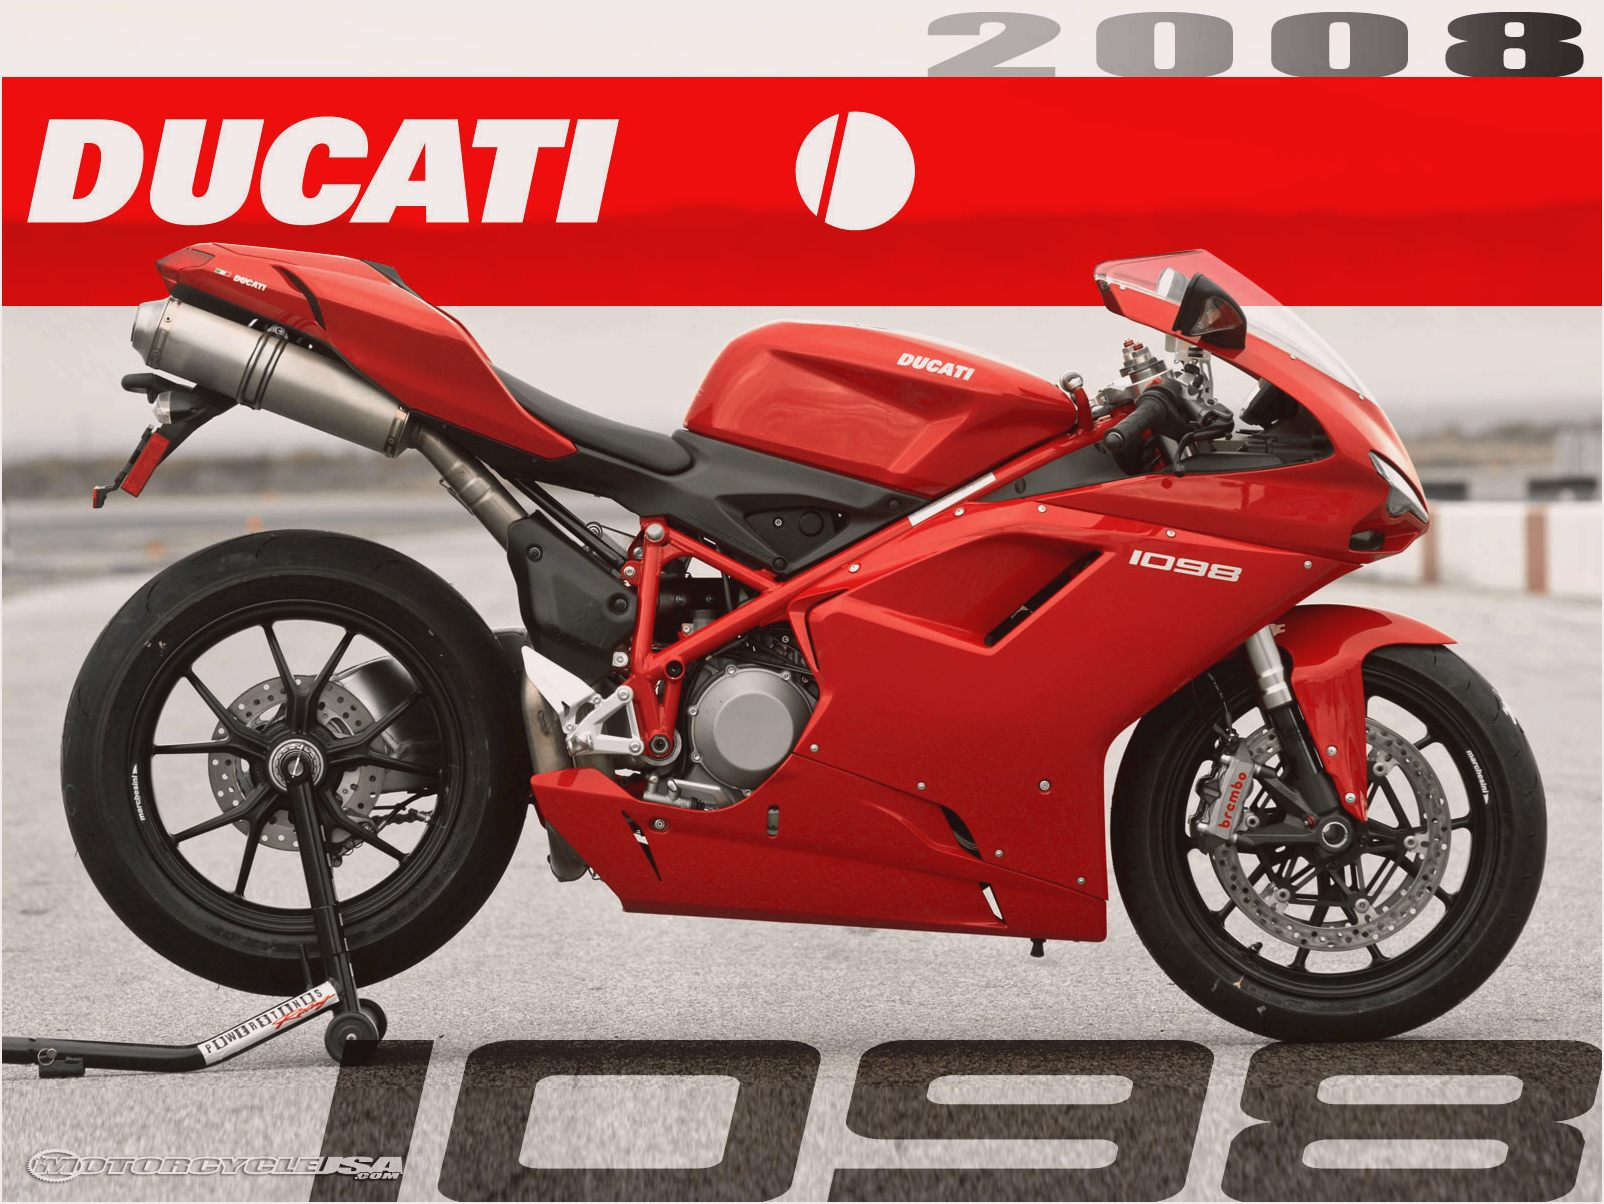 Ducati Superbike 1098 R Bayliss Limited Edition 2009 wallpapers #12437